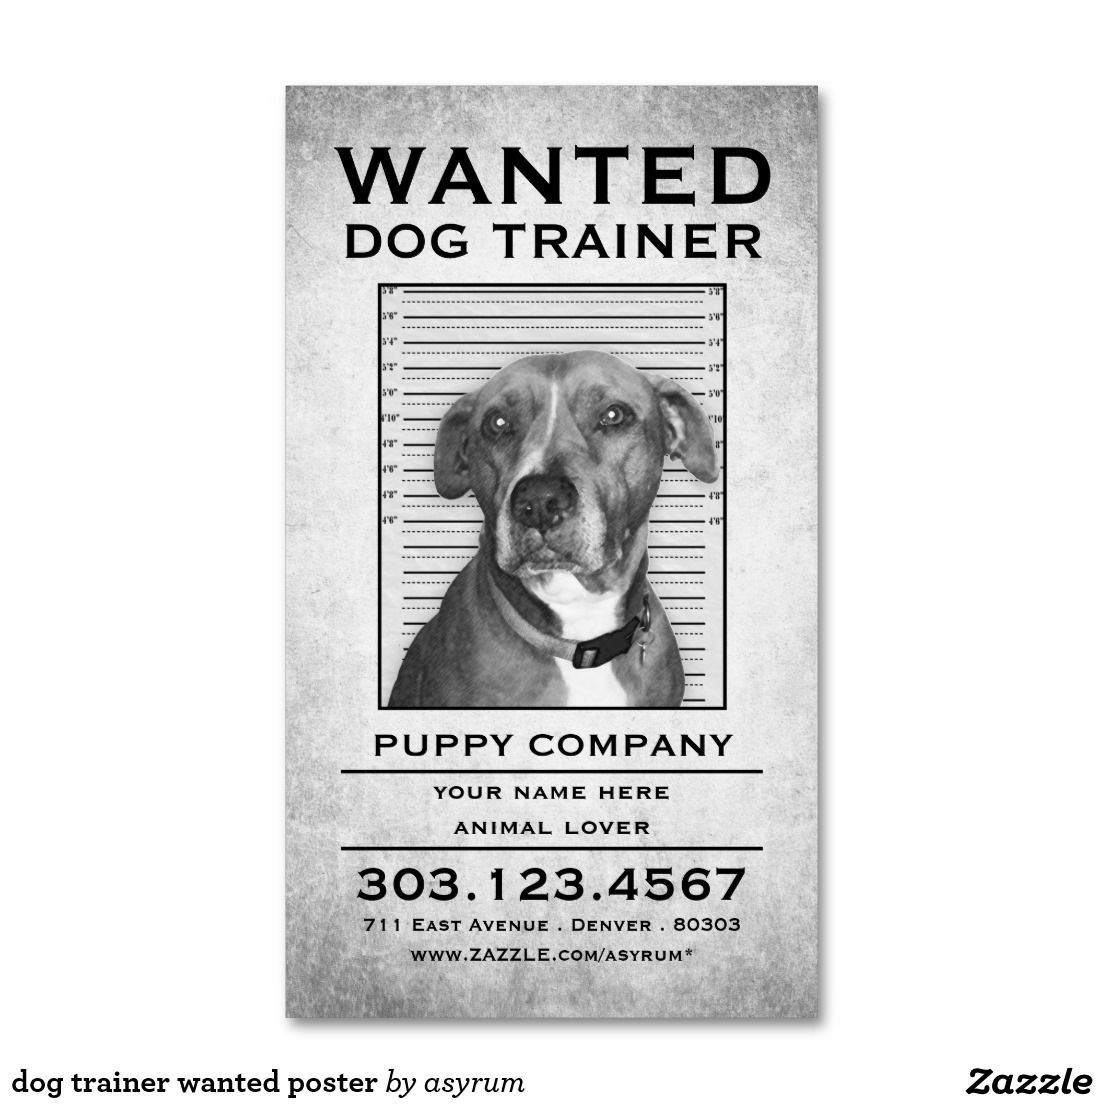 Dog Trainer Wanted Poster Business Card Zazzle Com Dog Trainer